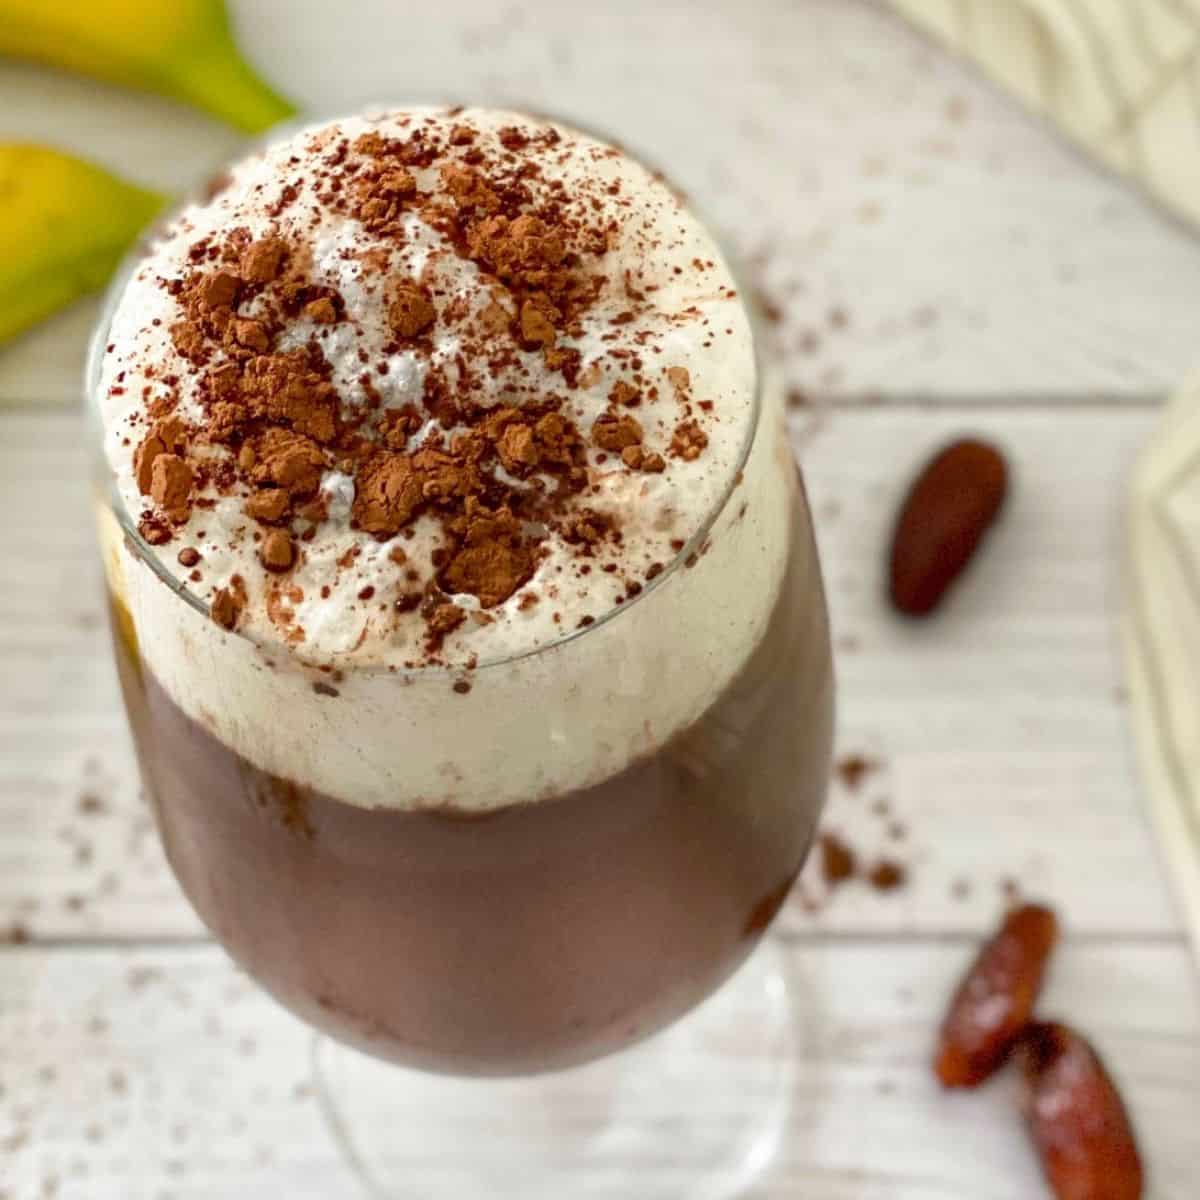 Overhead view of glass with iced mocha with dates and bananas around it.